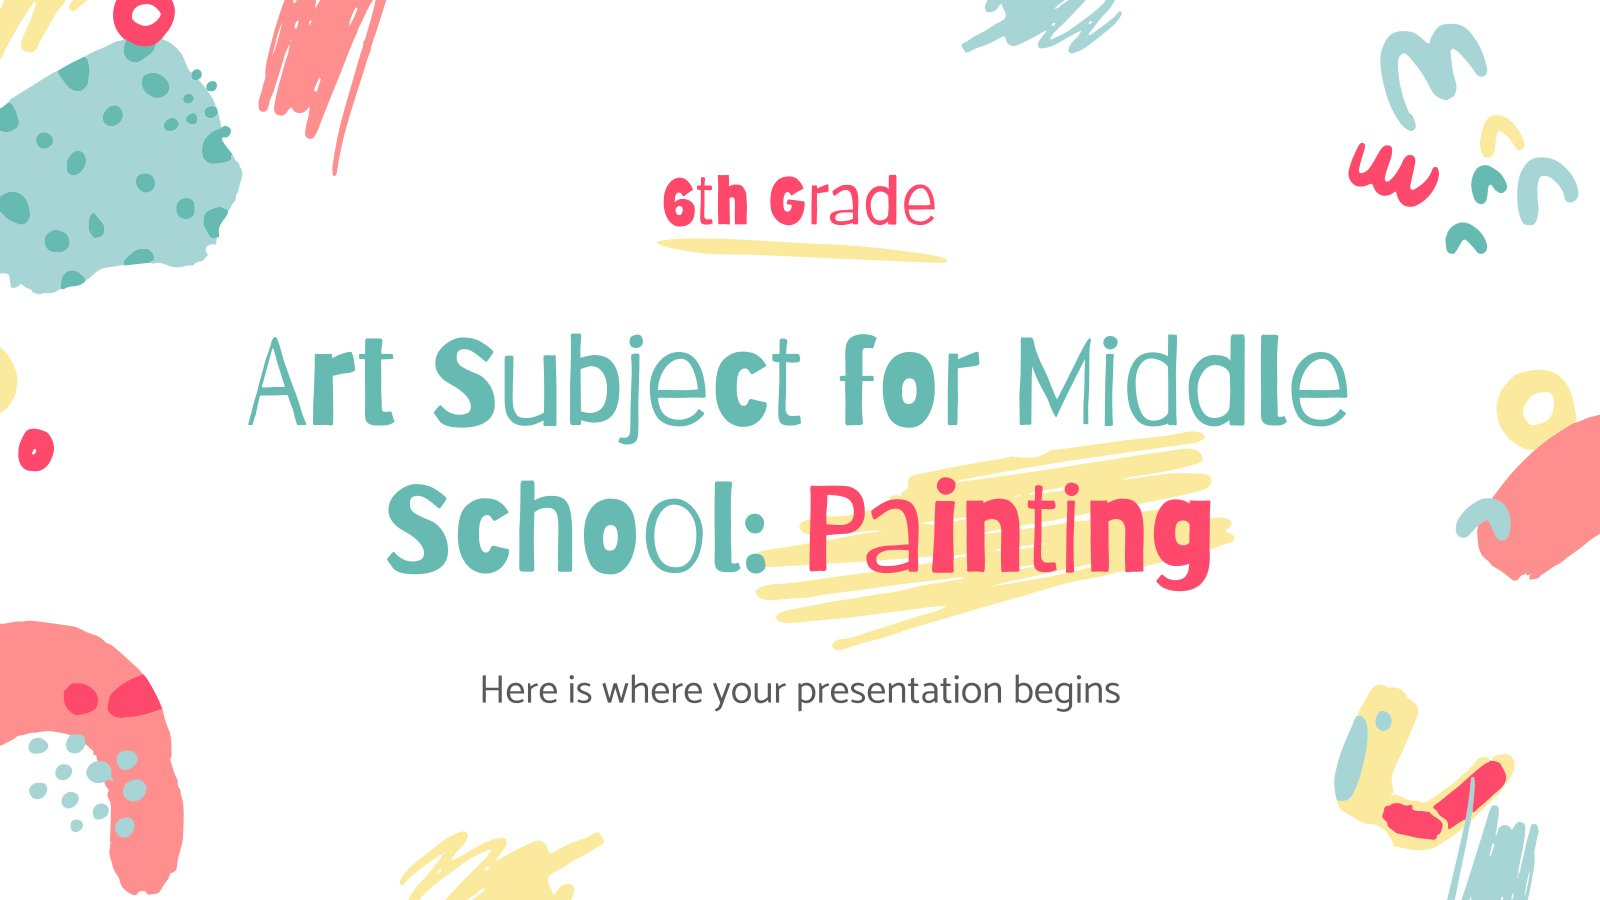 Art Subject for Middle School - 6th Grade: Painting presentation template